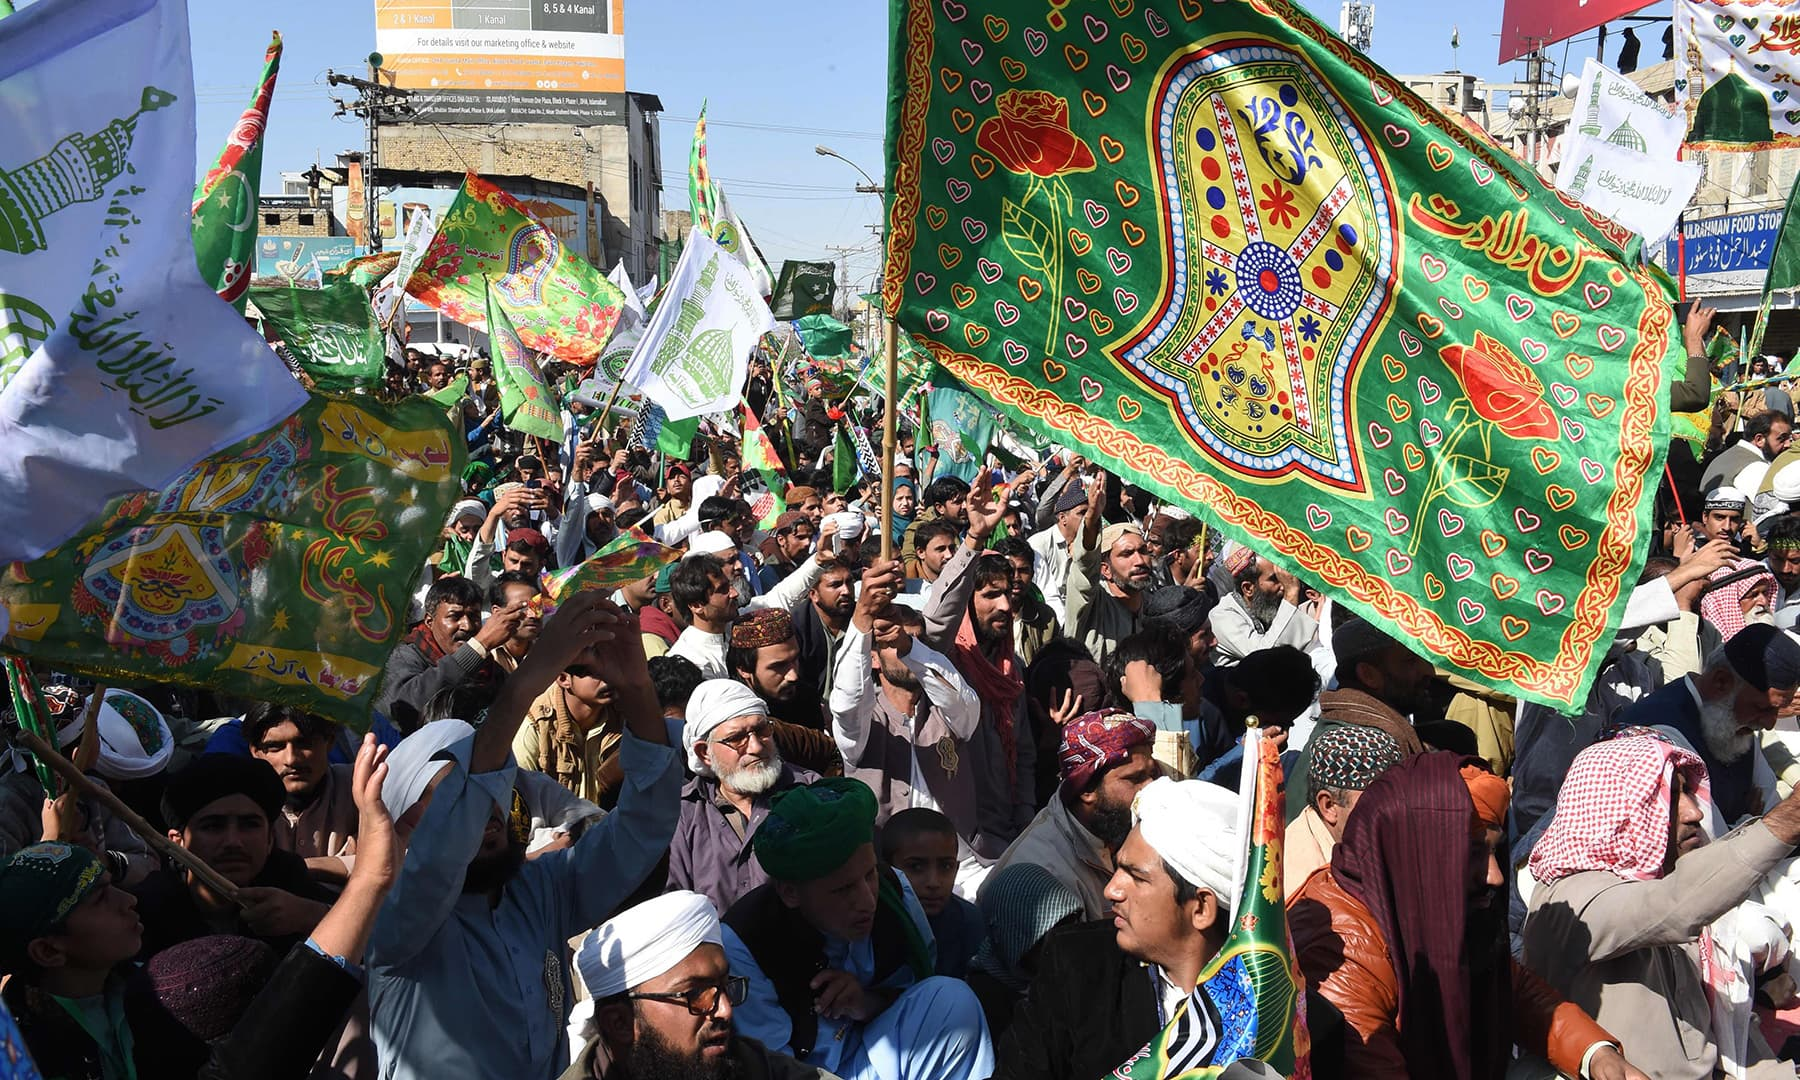 Participants carry flags as they march in a procession o celebrate the birth of the Holy Prophet (PBUH), in Karachi on Sunday. — AFP